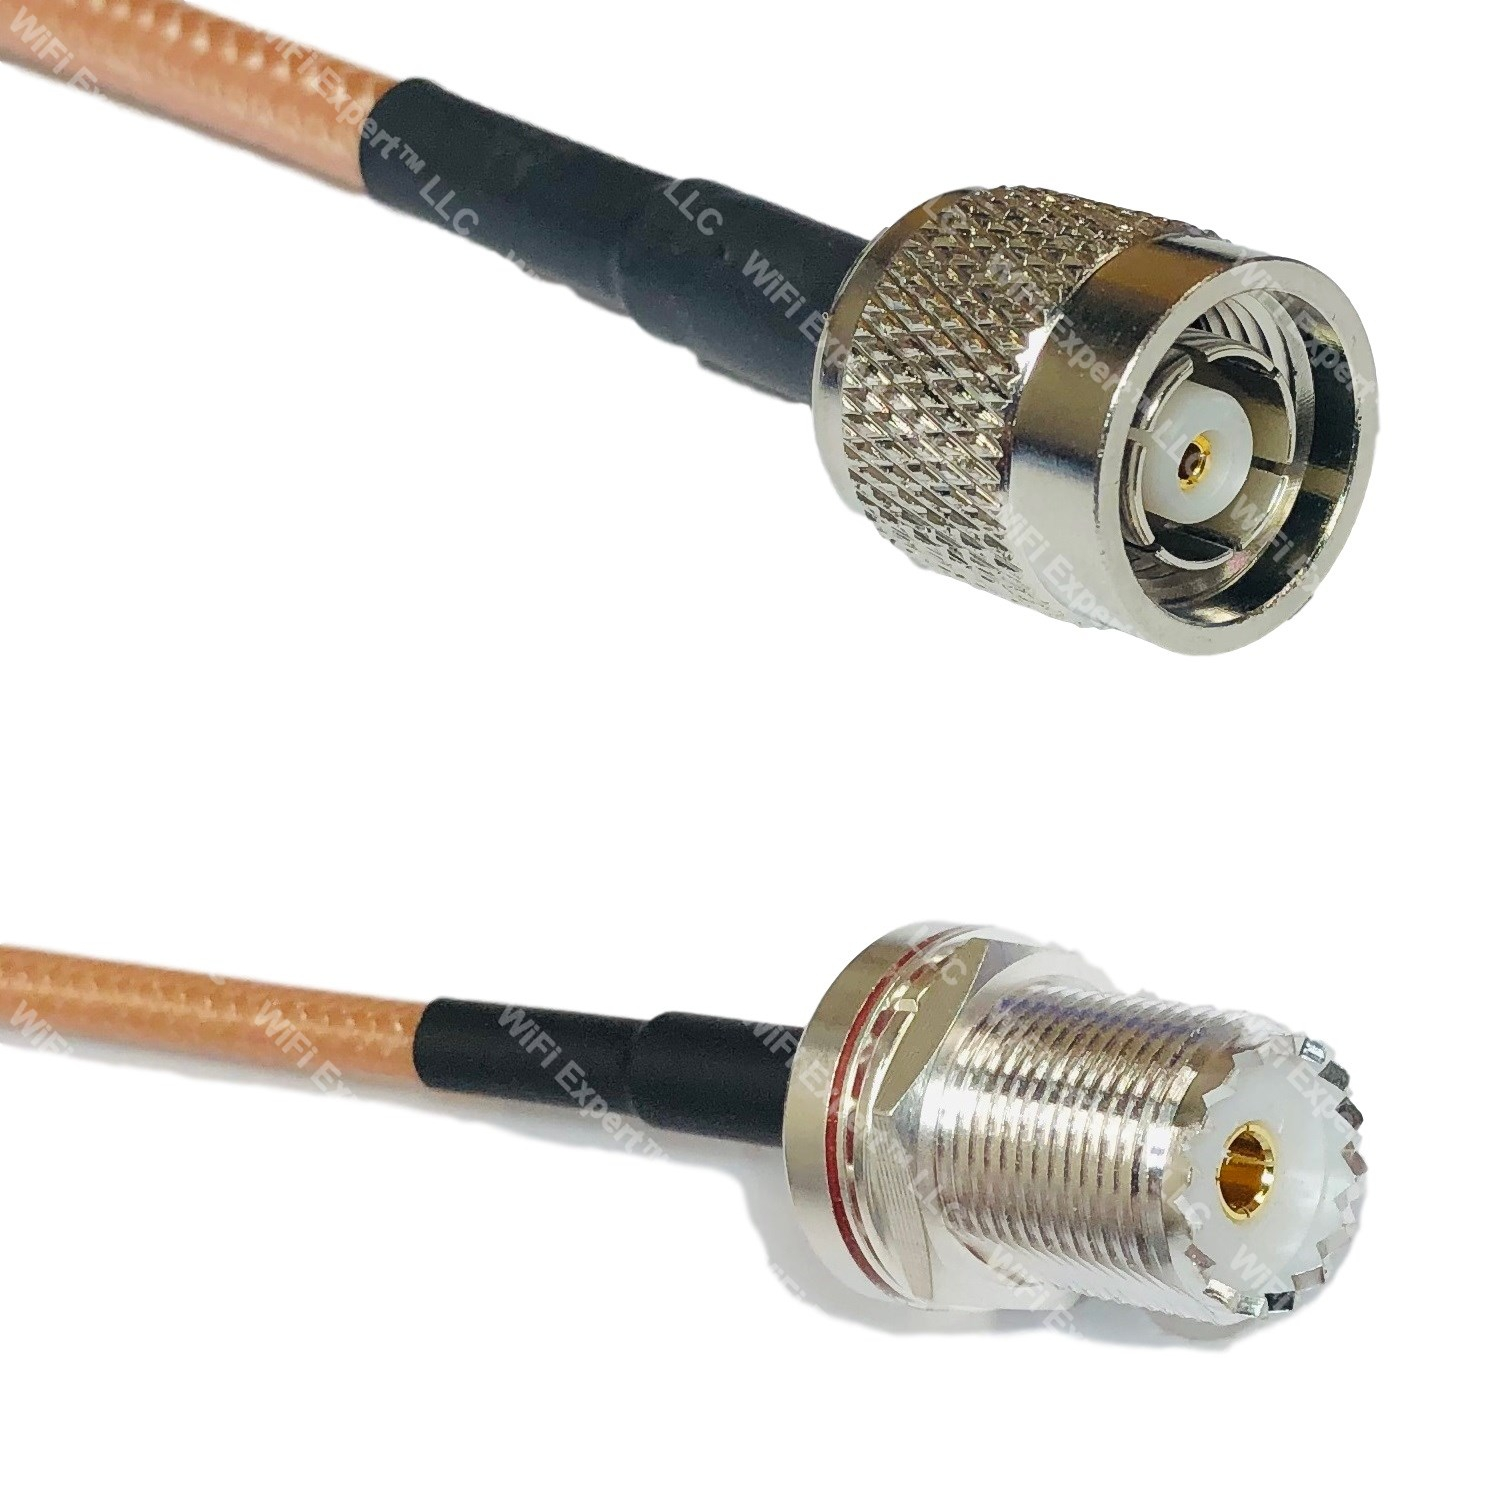 RG316 SO239 UHF Female to RP-TNC MALE Coaxial RF Cable USA-US